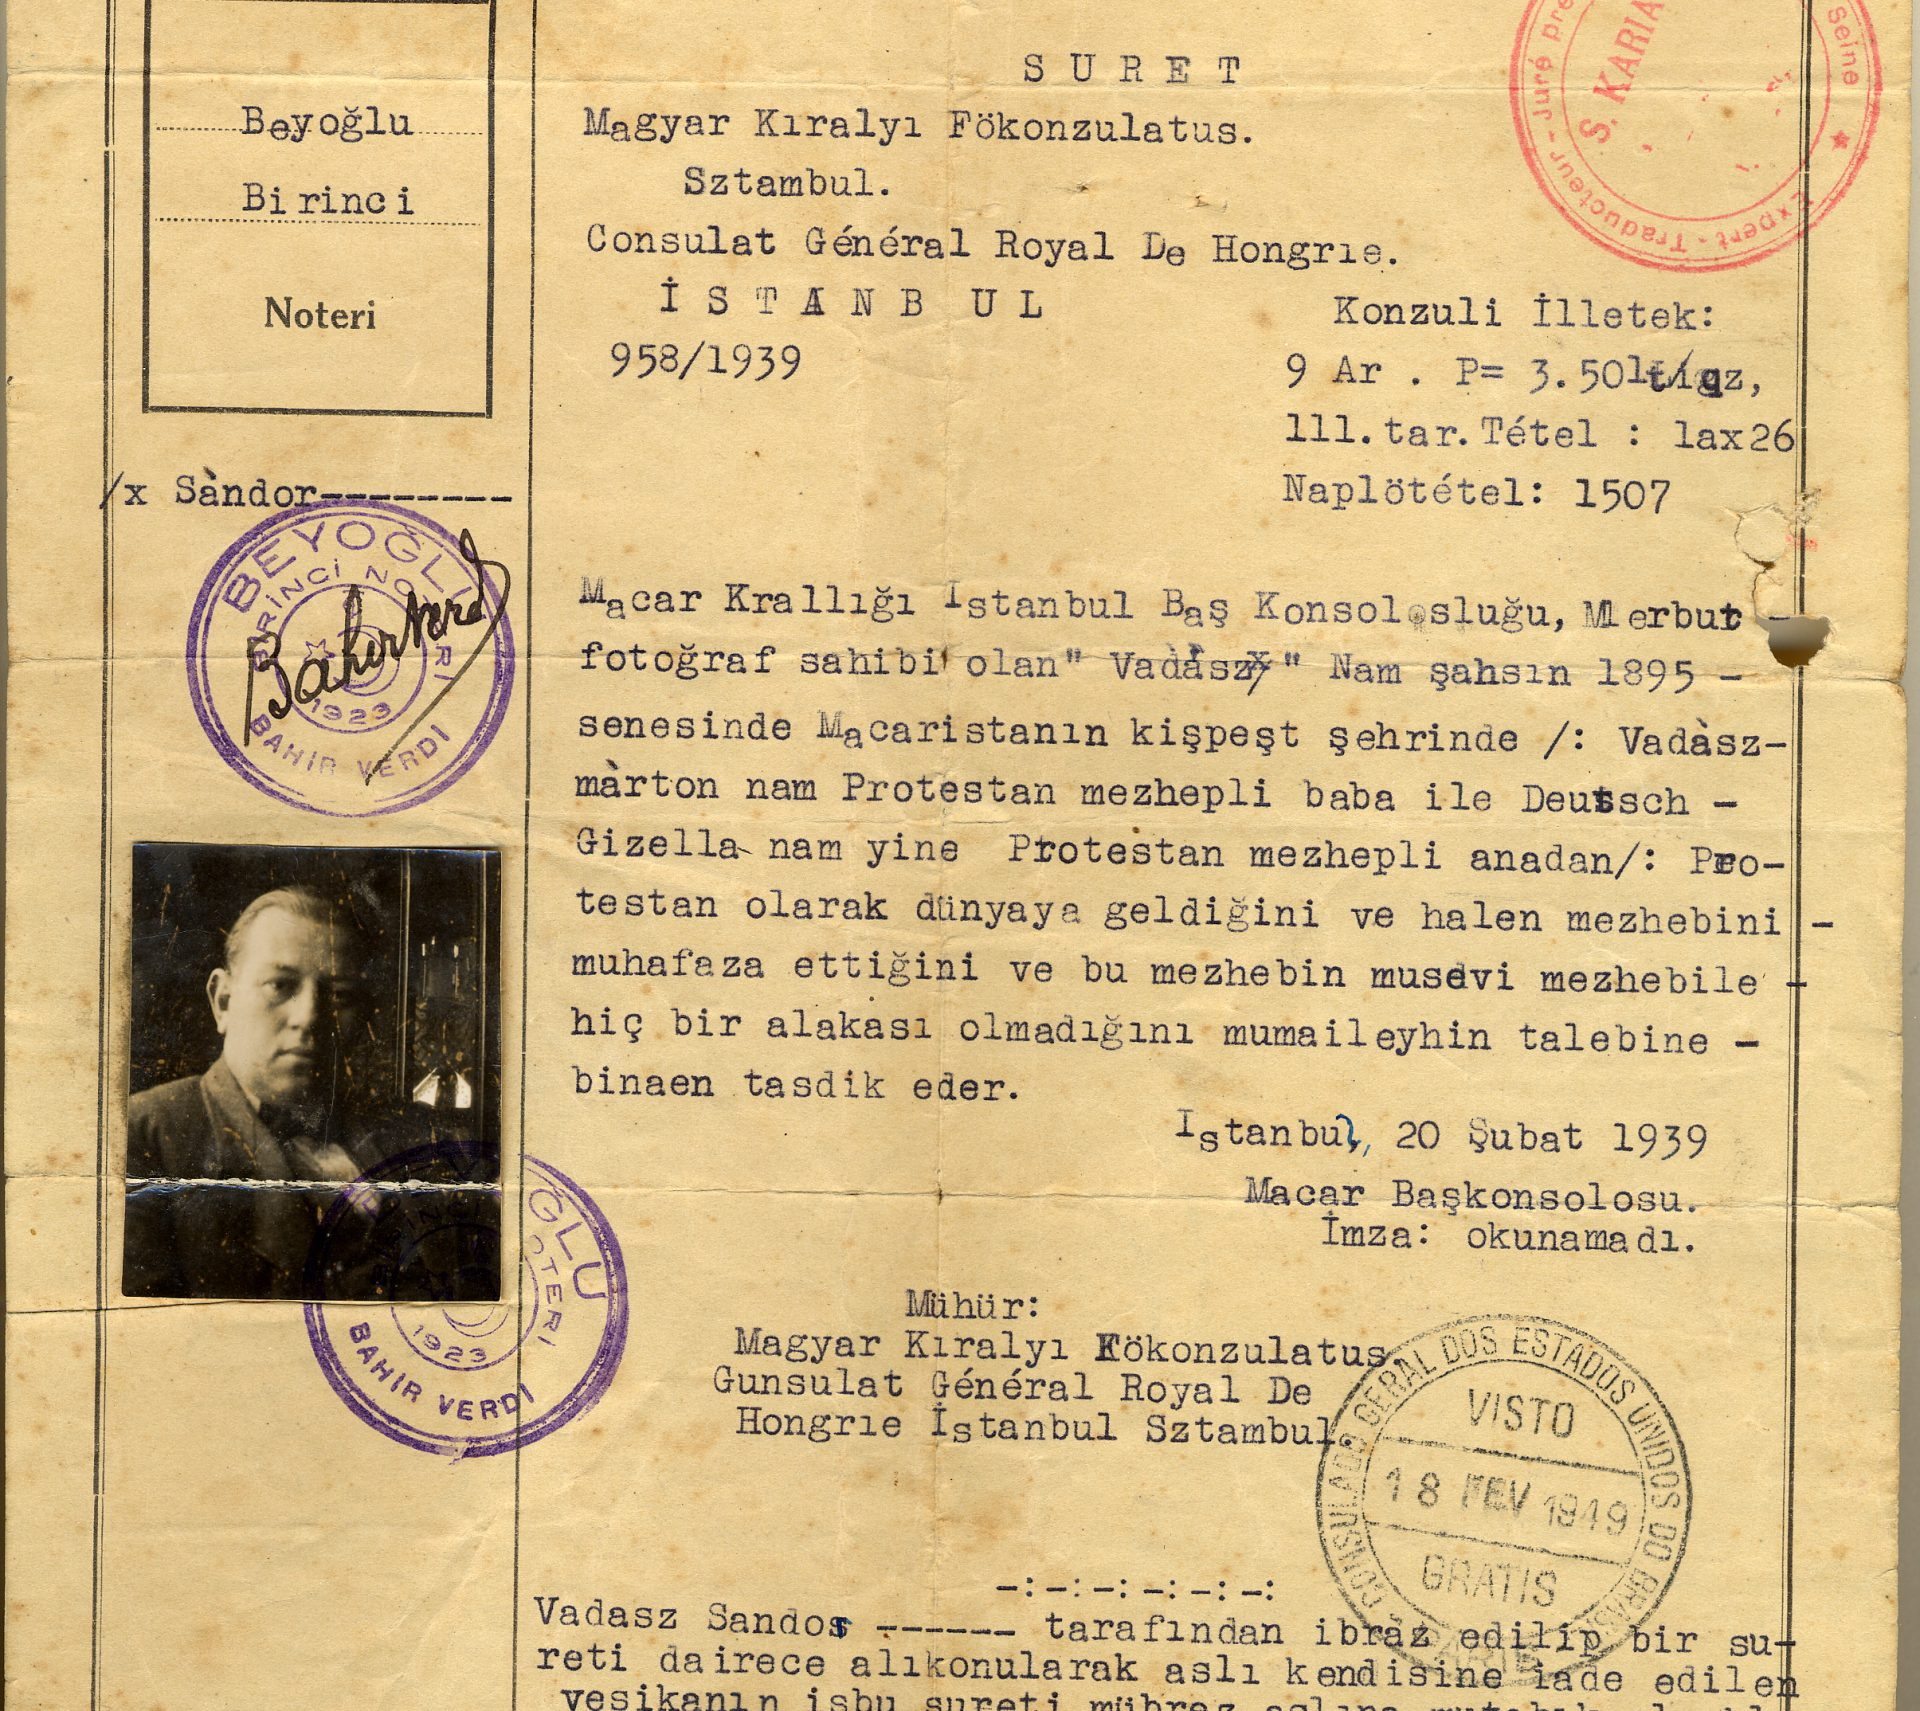 The original document was produced in Turkey in 1939.